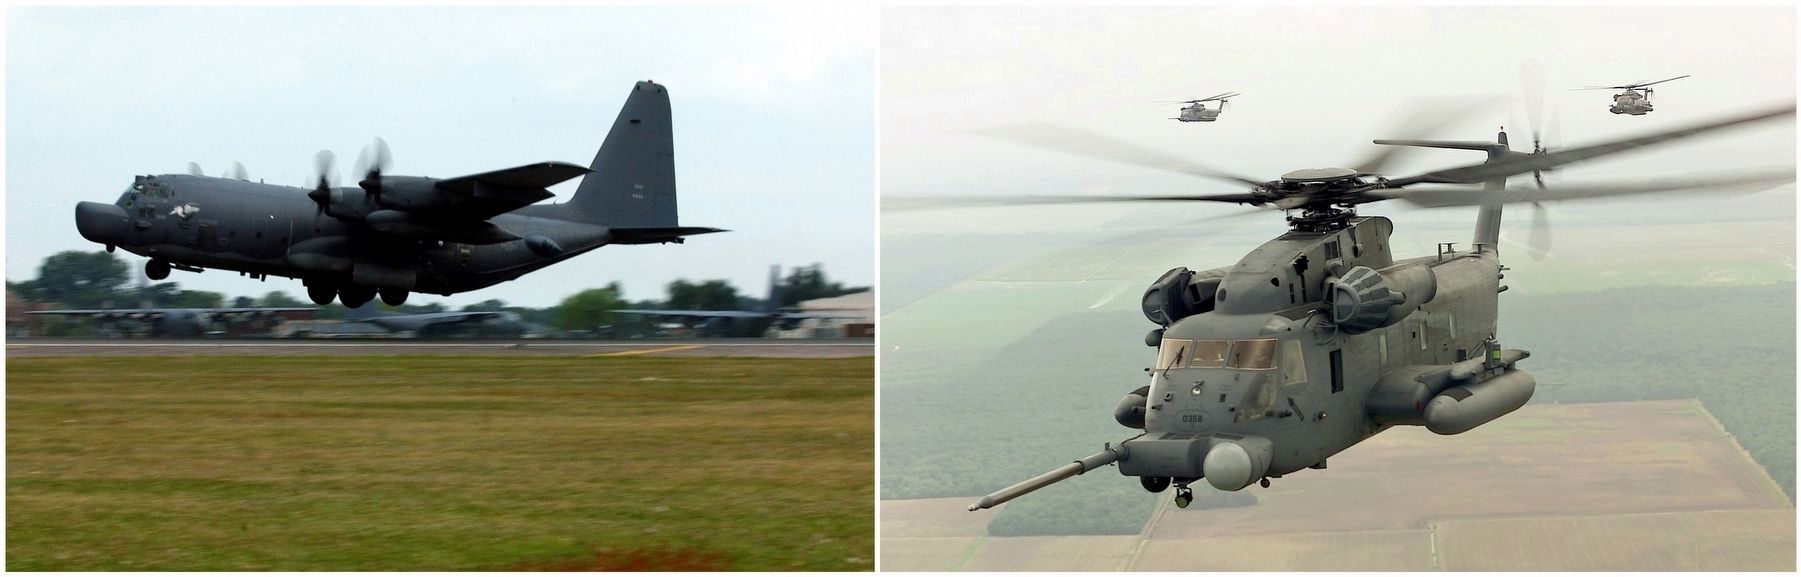 MC-130H (left) and a MH-53J (right). image. Click for full size.